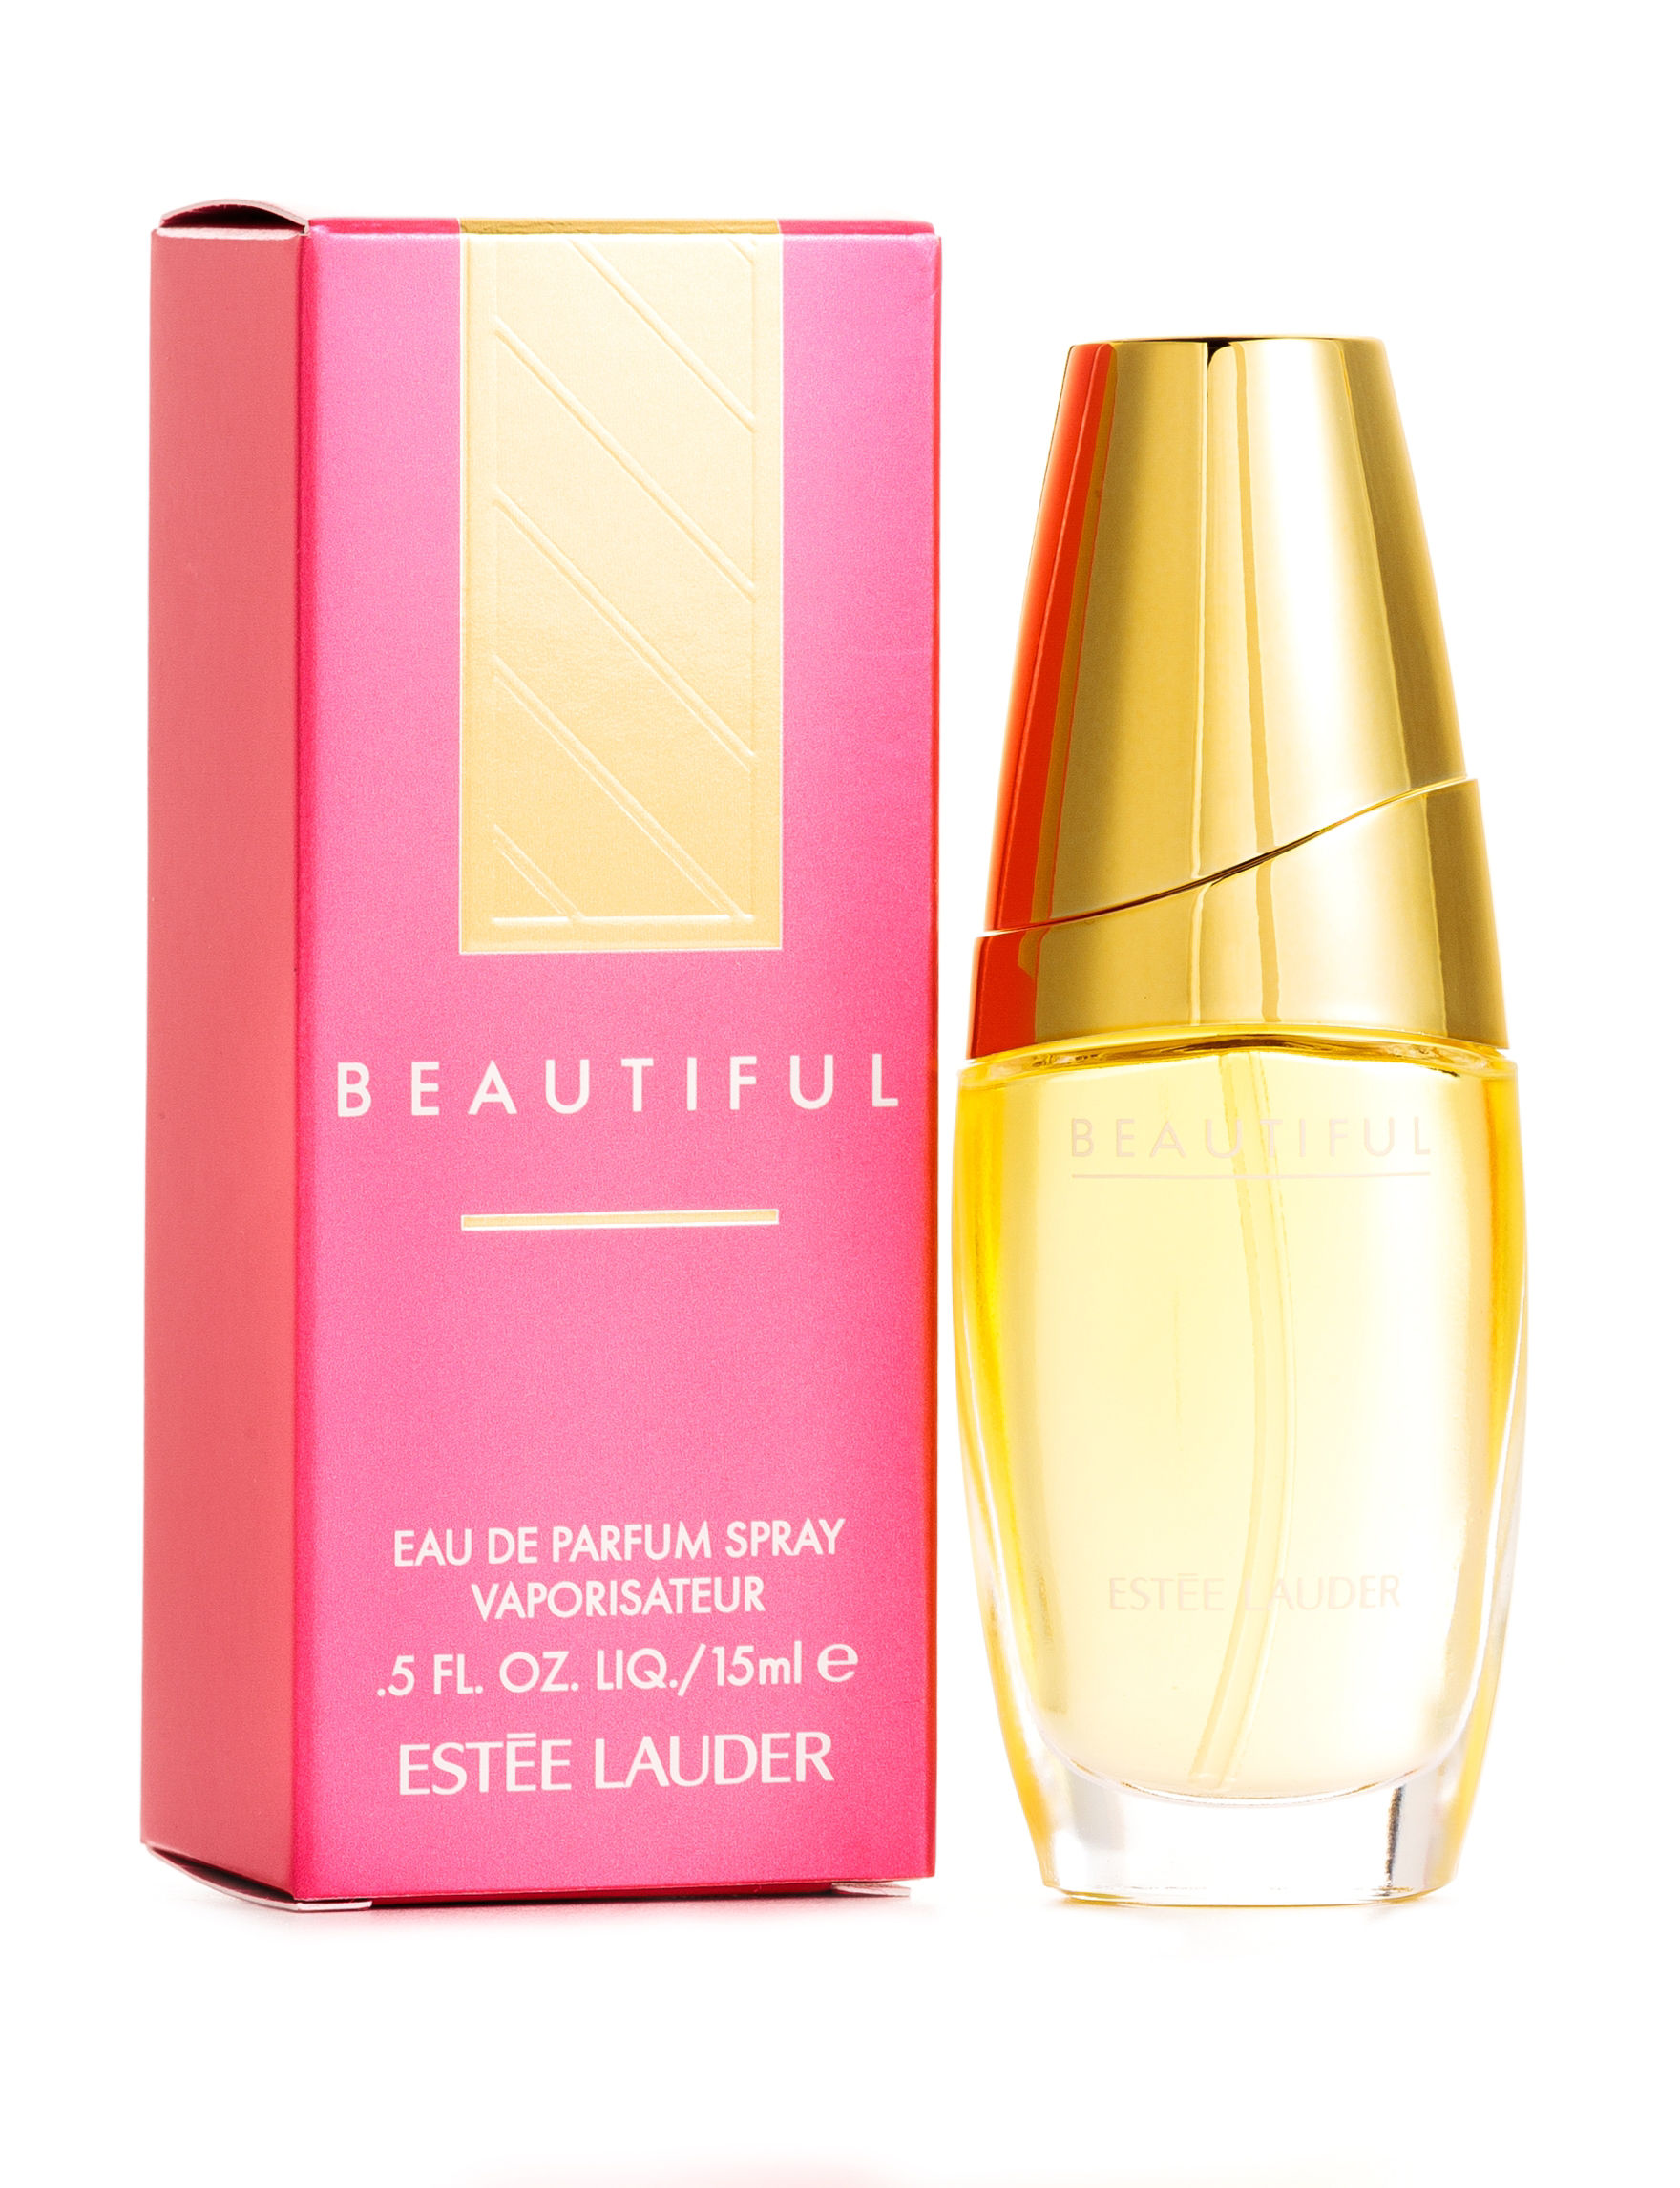 Estee Lauder  Travel Sprays & Rollerballs